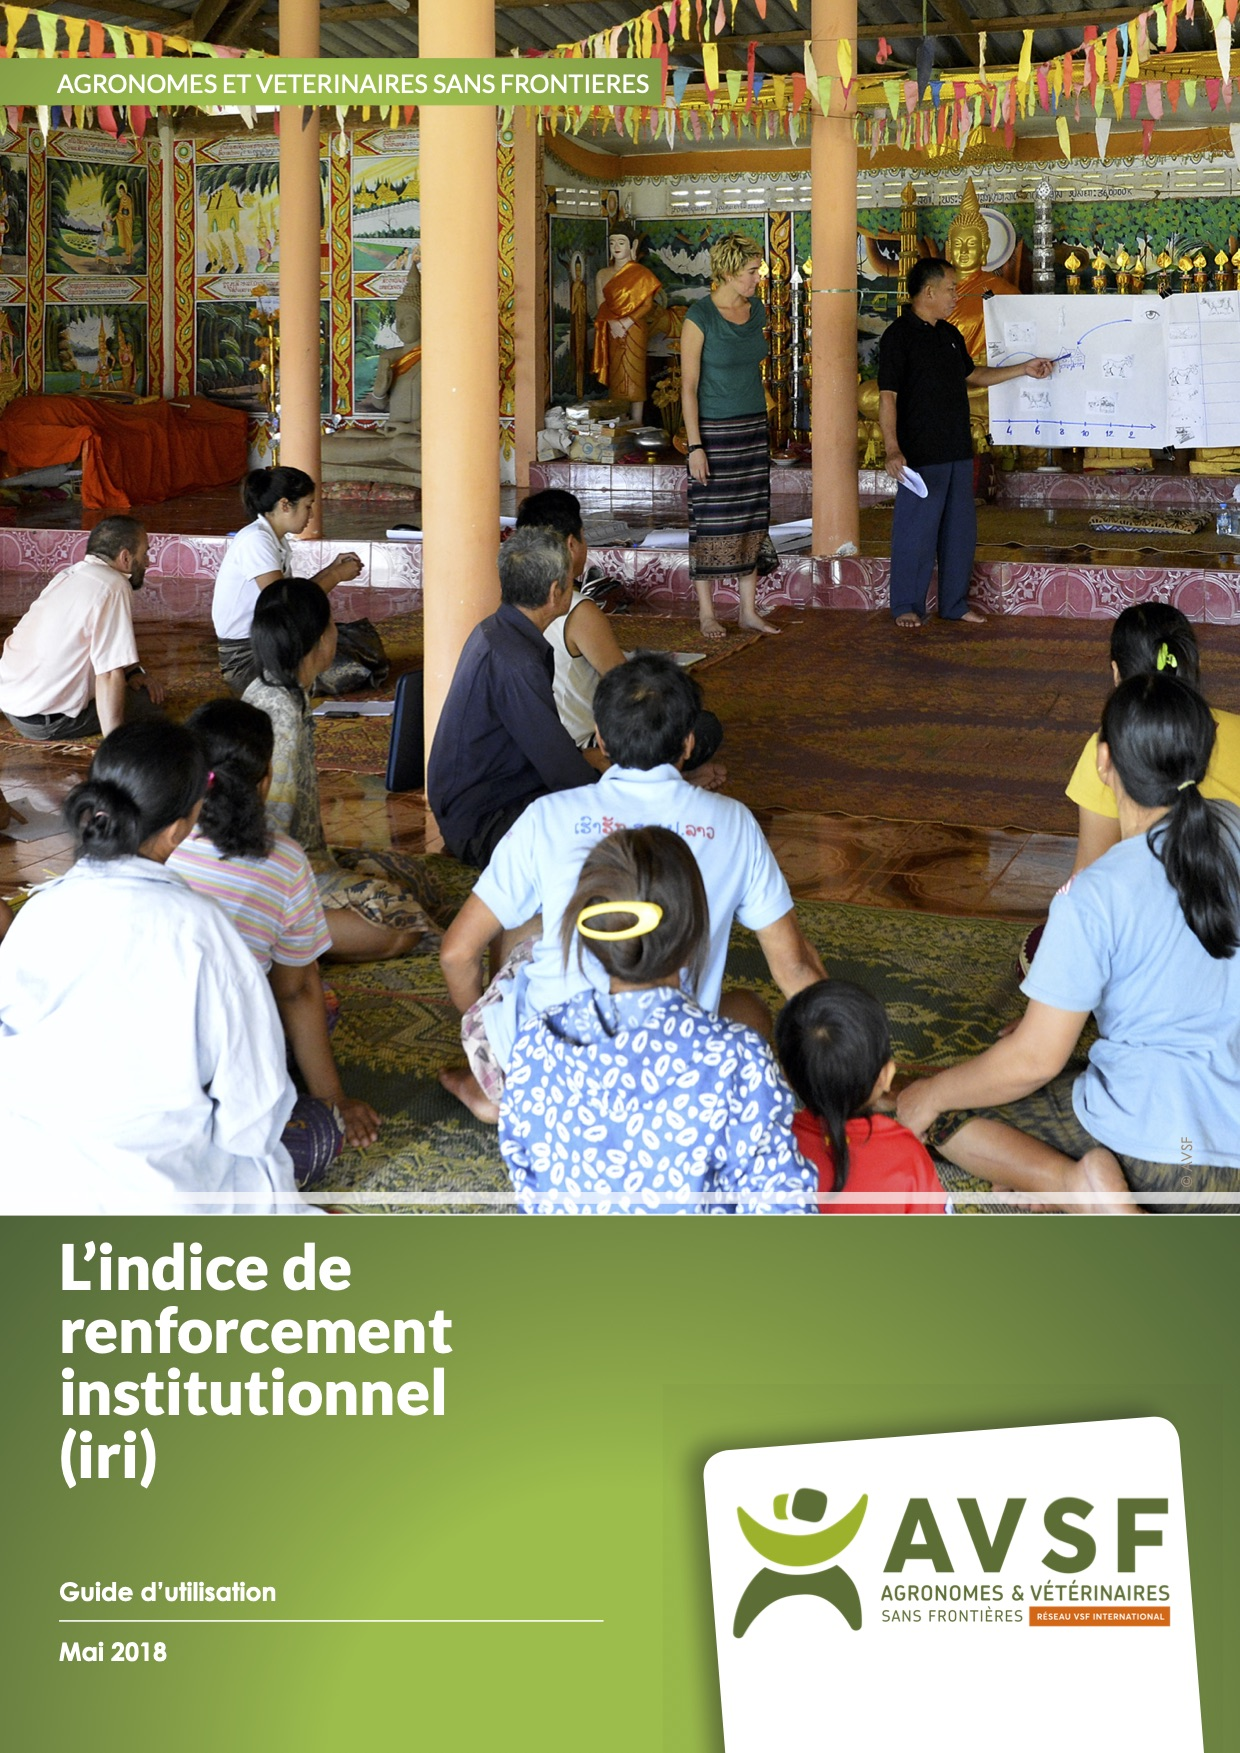 L'indice de renforcement institutionnel (IRI) : guide d'utilisation  Image principale